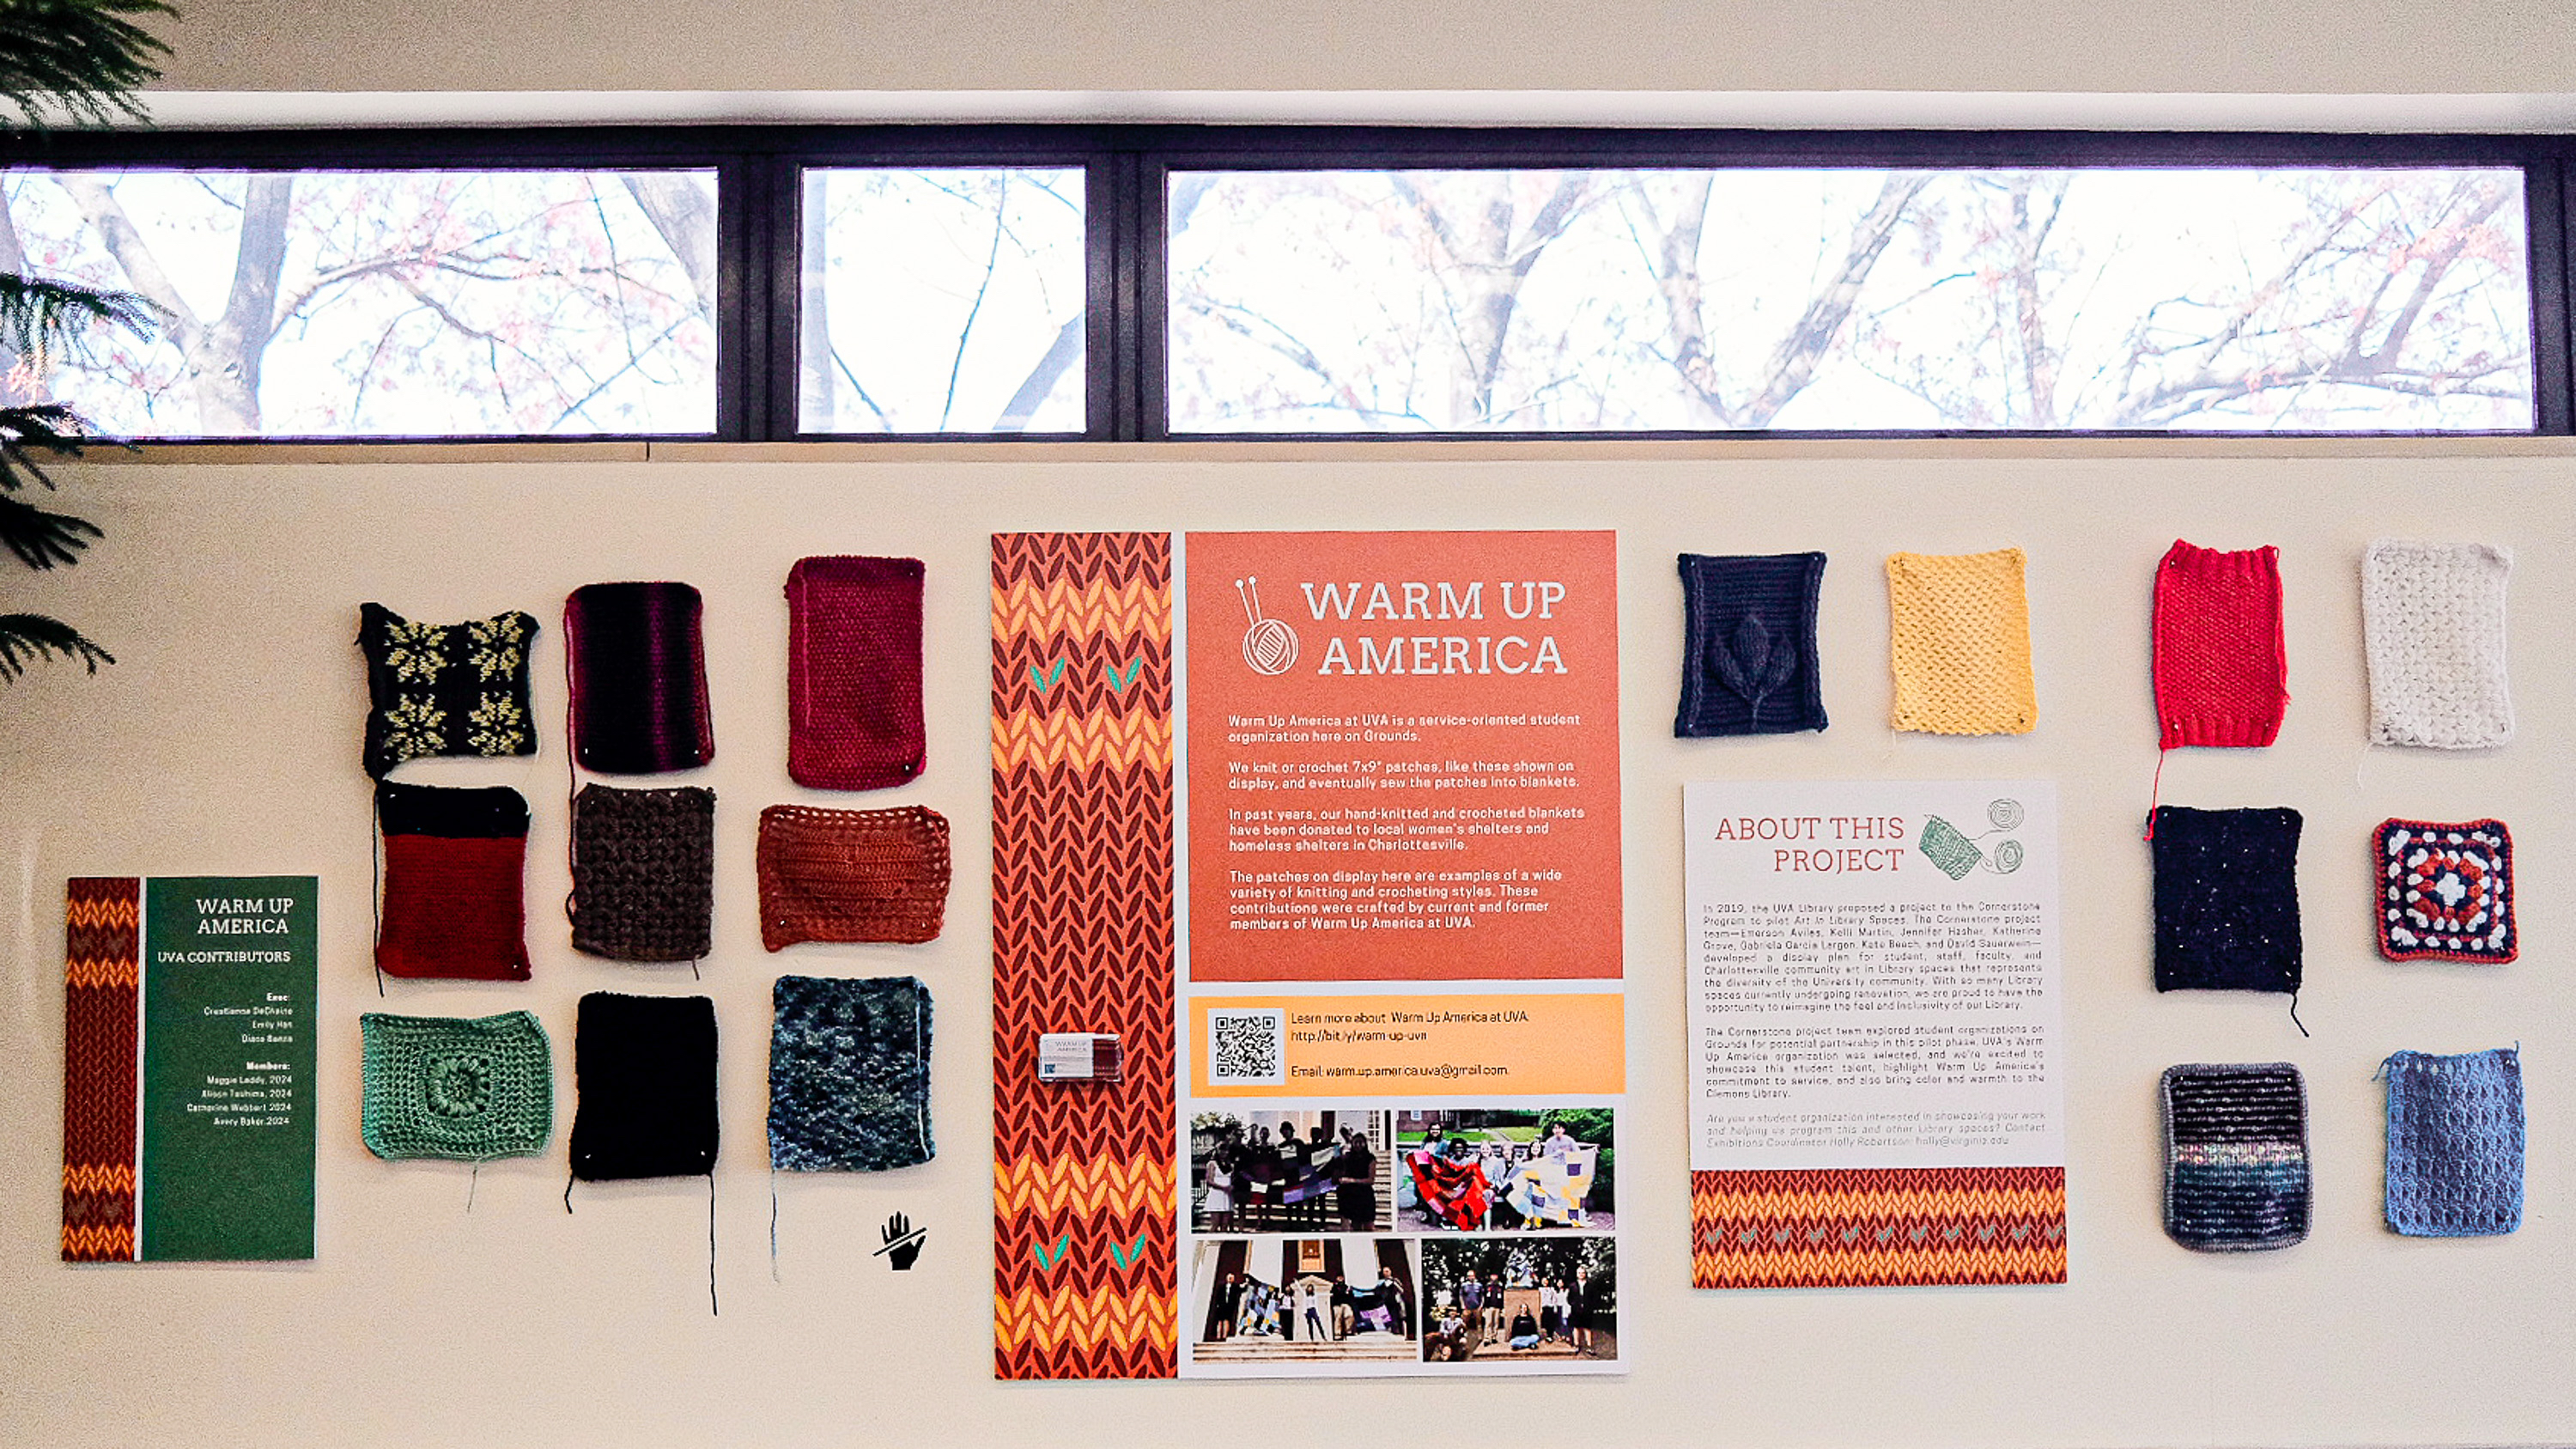 Gallery installation of knit and crochet squares by student organization Warm Up America